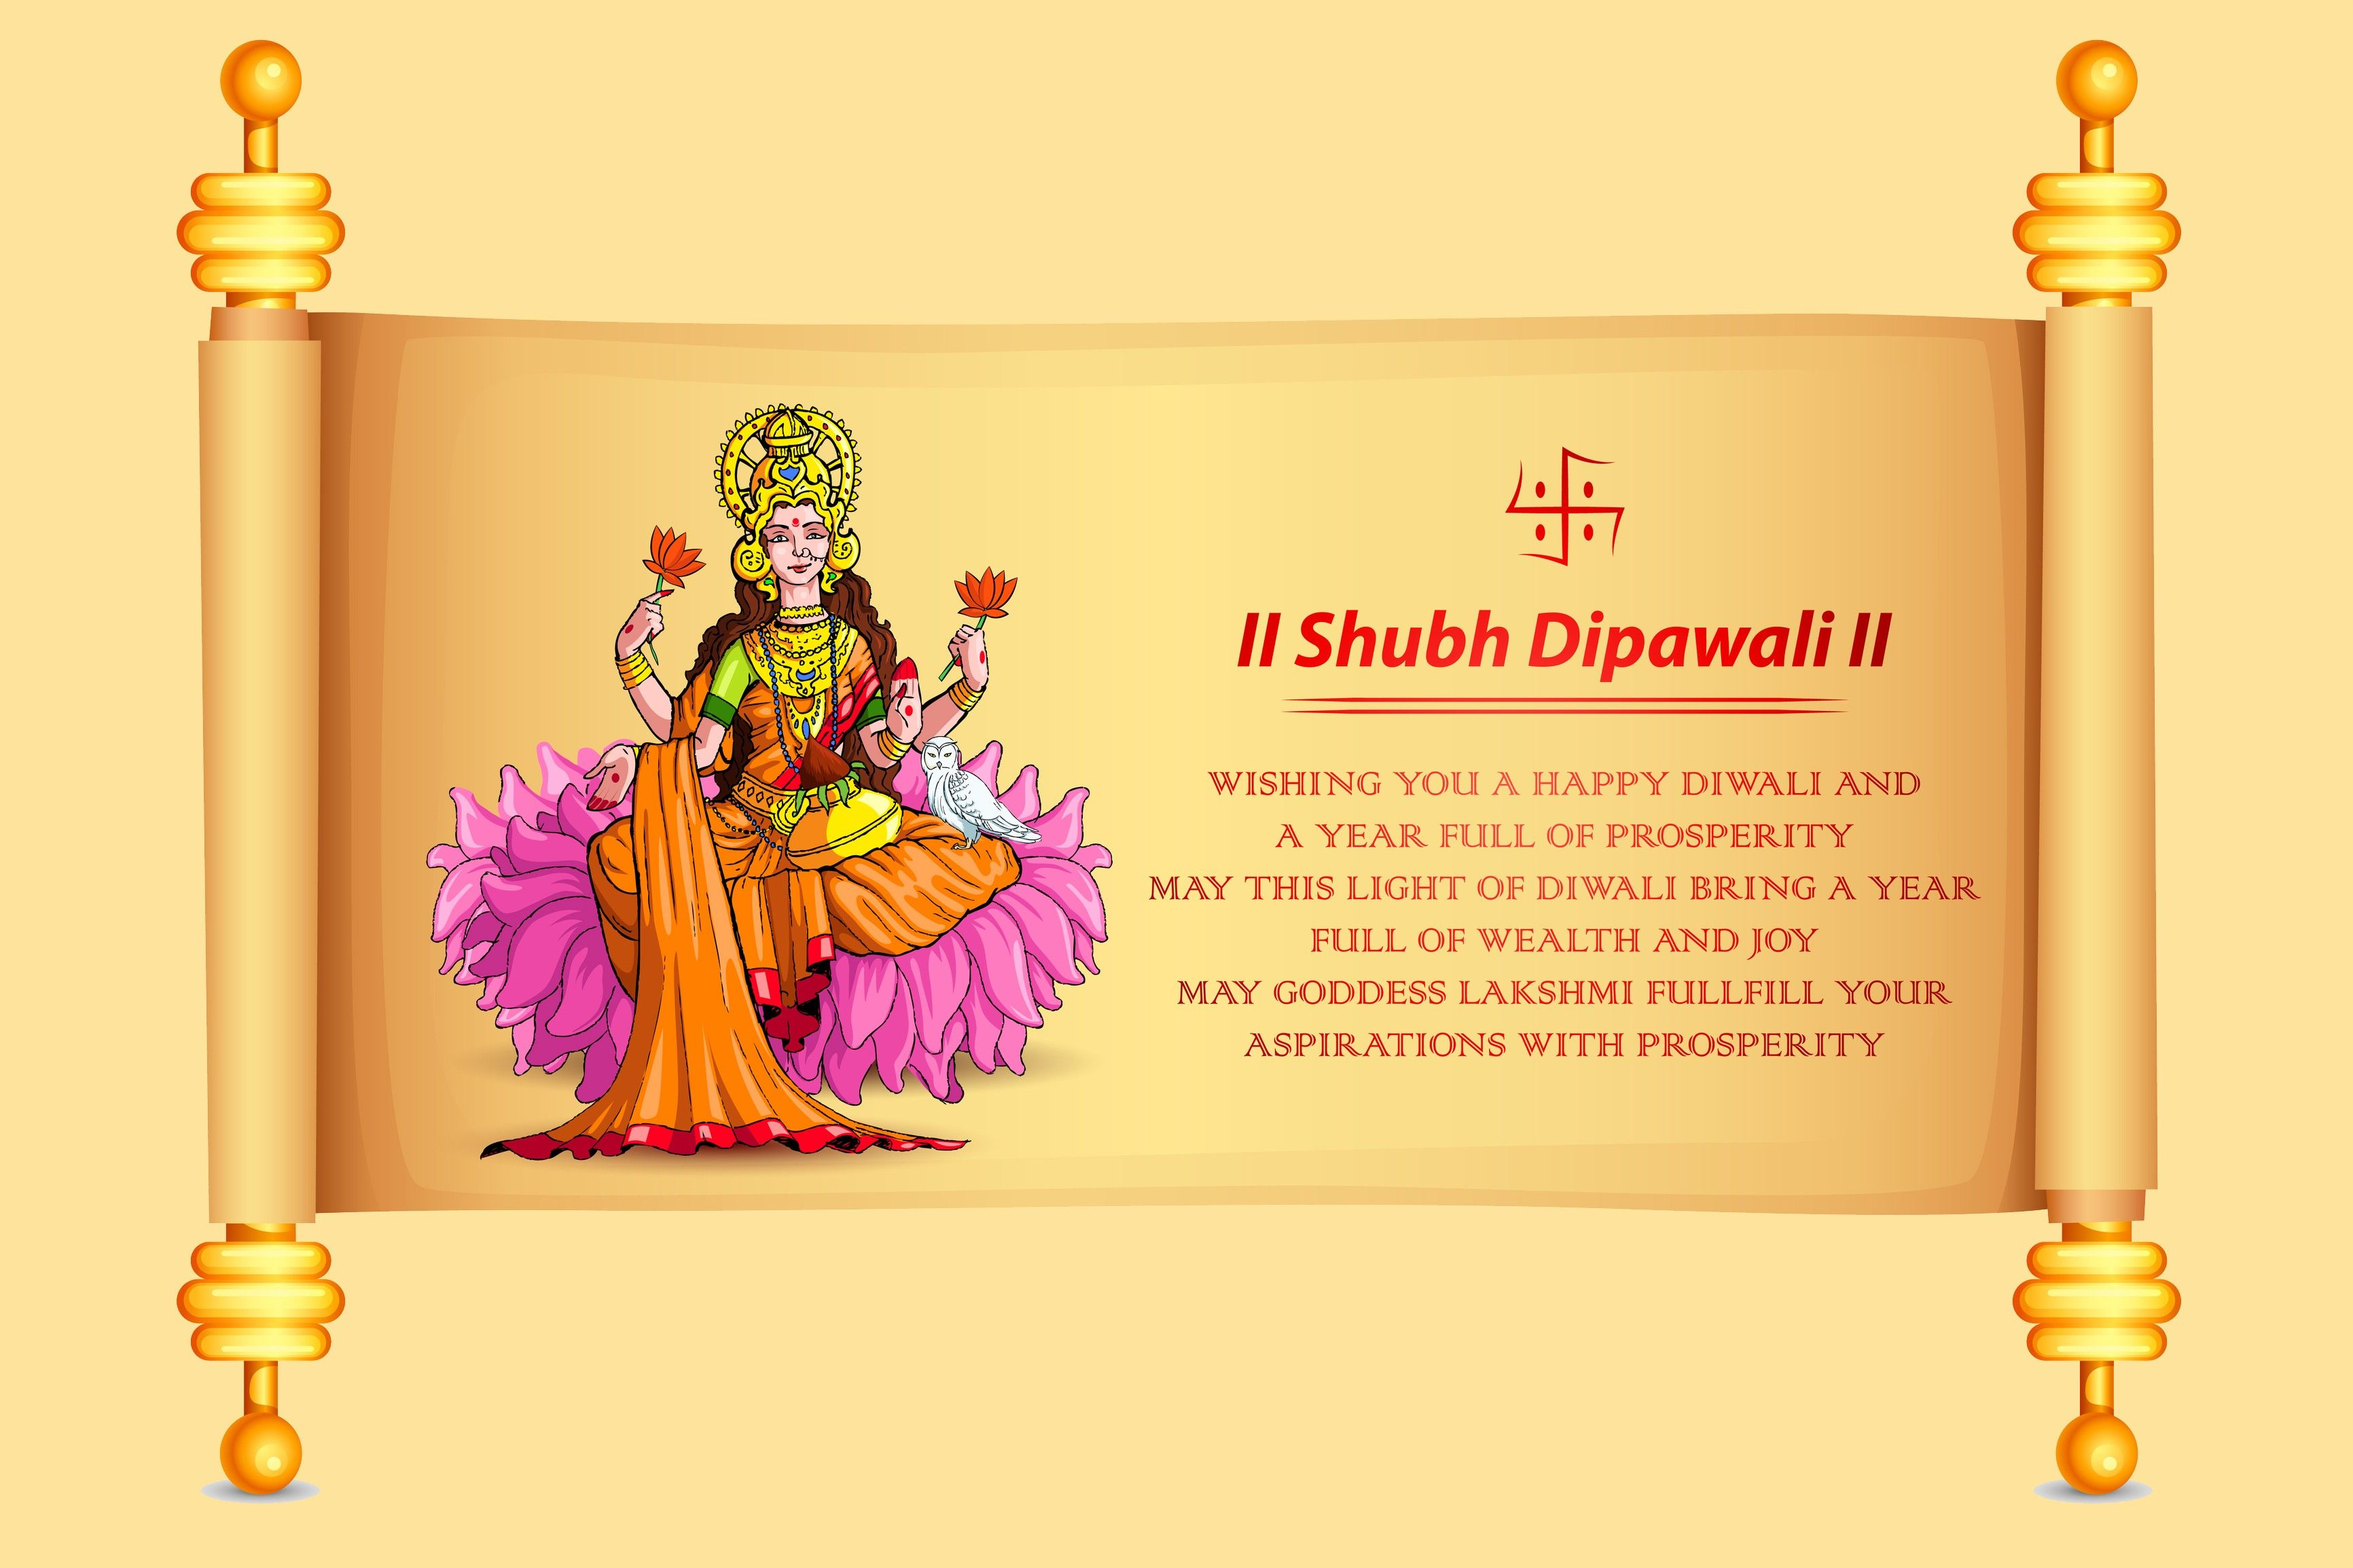 We wish the occasion of dhanteras endows health happiness happy deepavali wishes greeting cards hindu festiva subh deepawali and happy new year wishes quotes hindi greeting cards with name editor free subh m4hsunfo Images